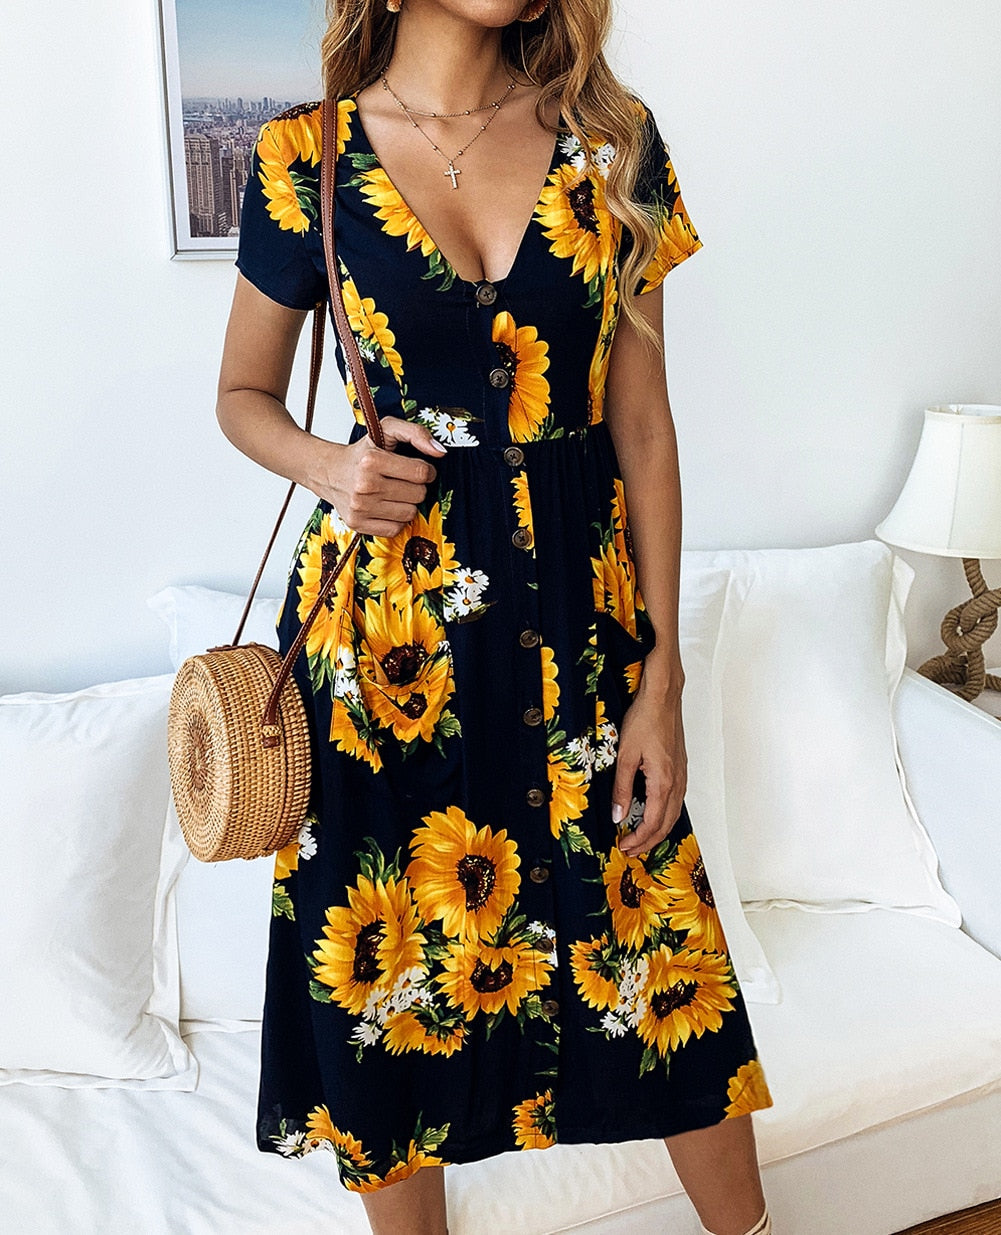 Women Summer Short Sleeve Sunflower Dress - Navy Blue